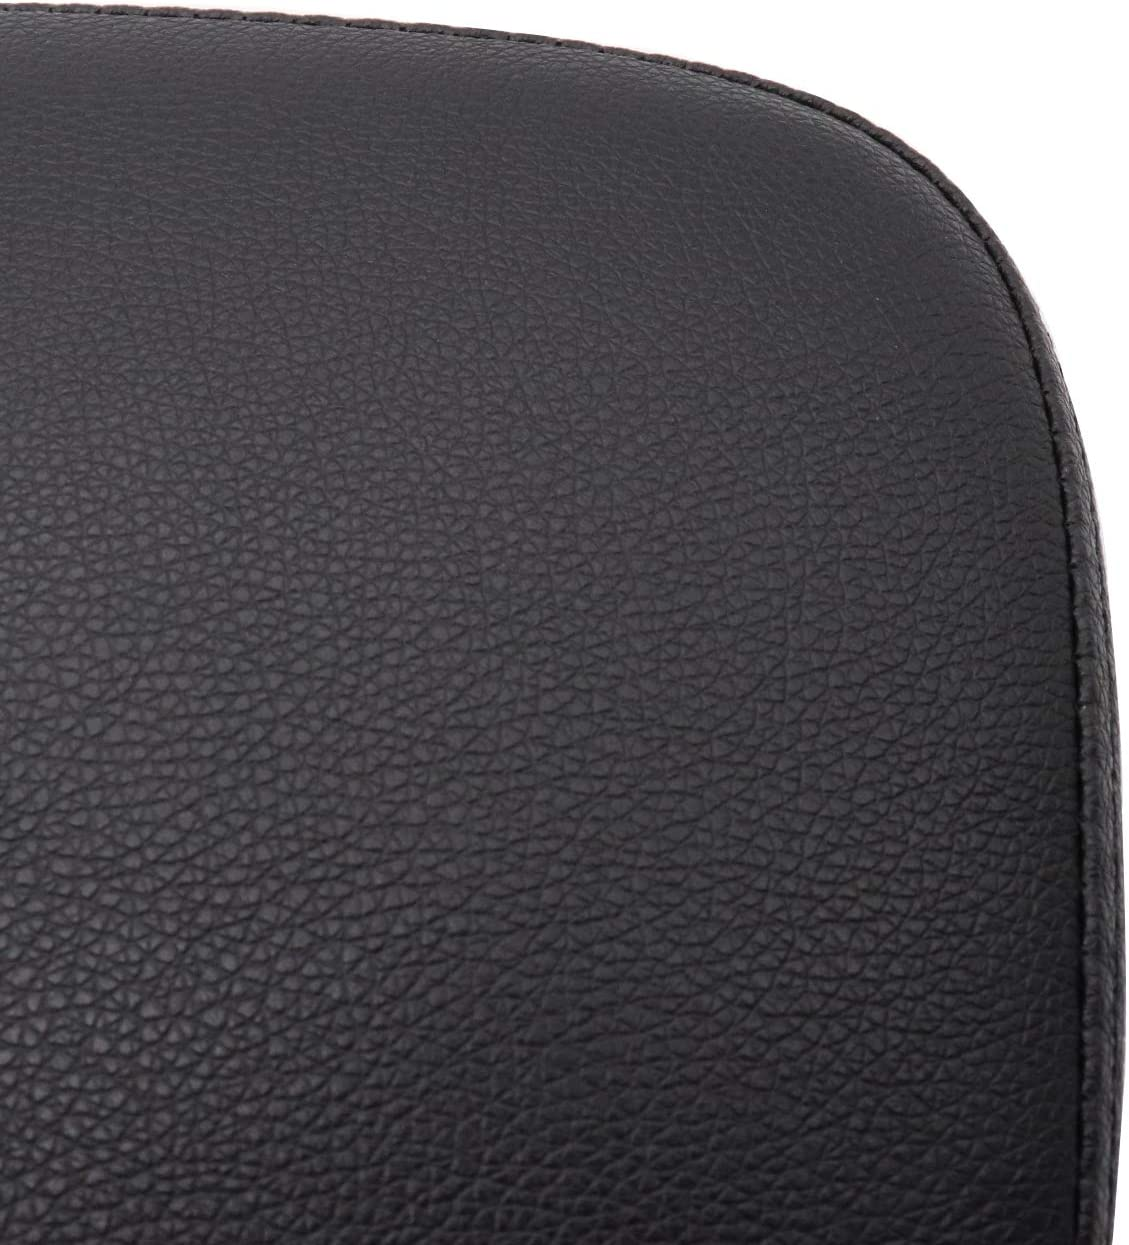 WOOSTAR Motorcycle Brown Seat Cushion with 8 Suckers Replacement for Harley 883 X48 1200